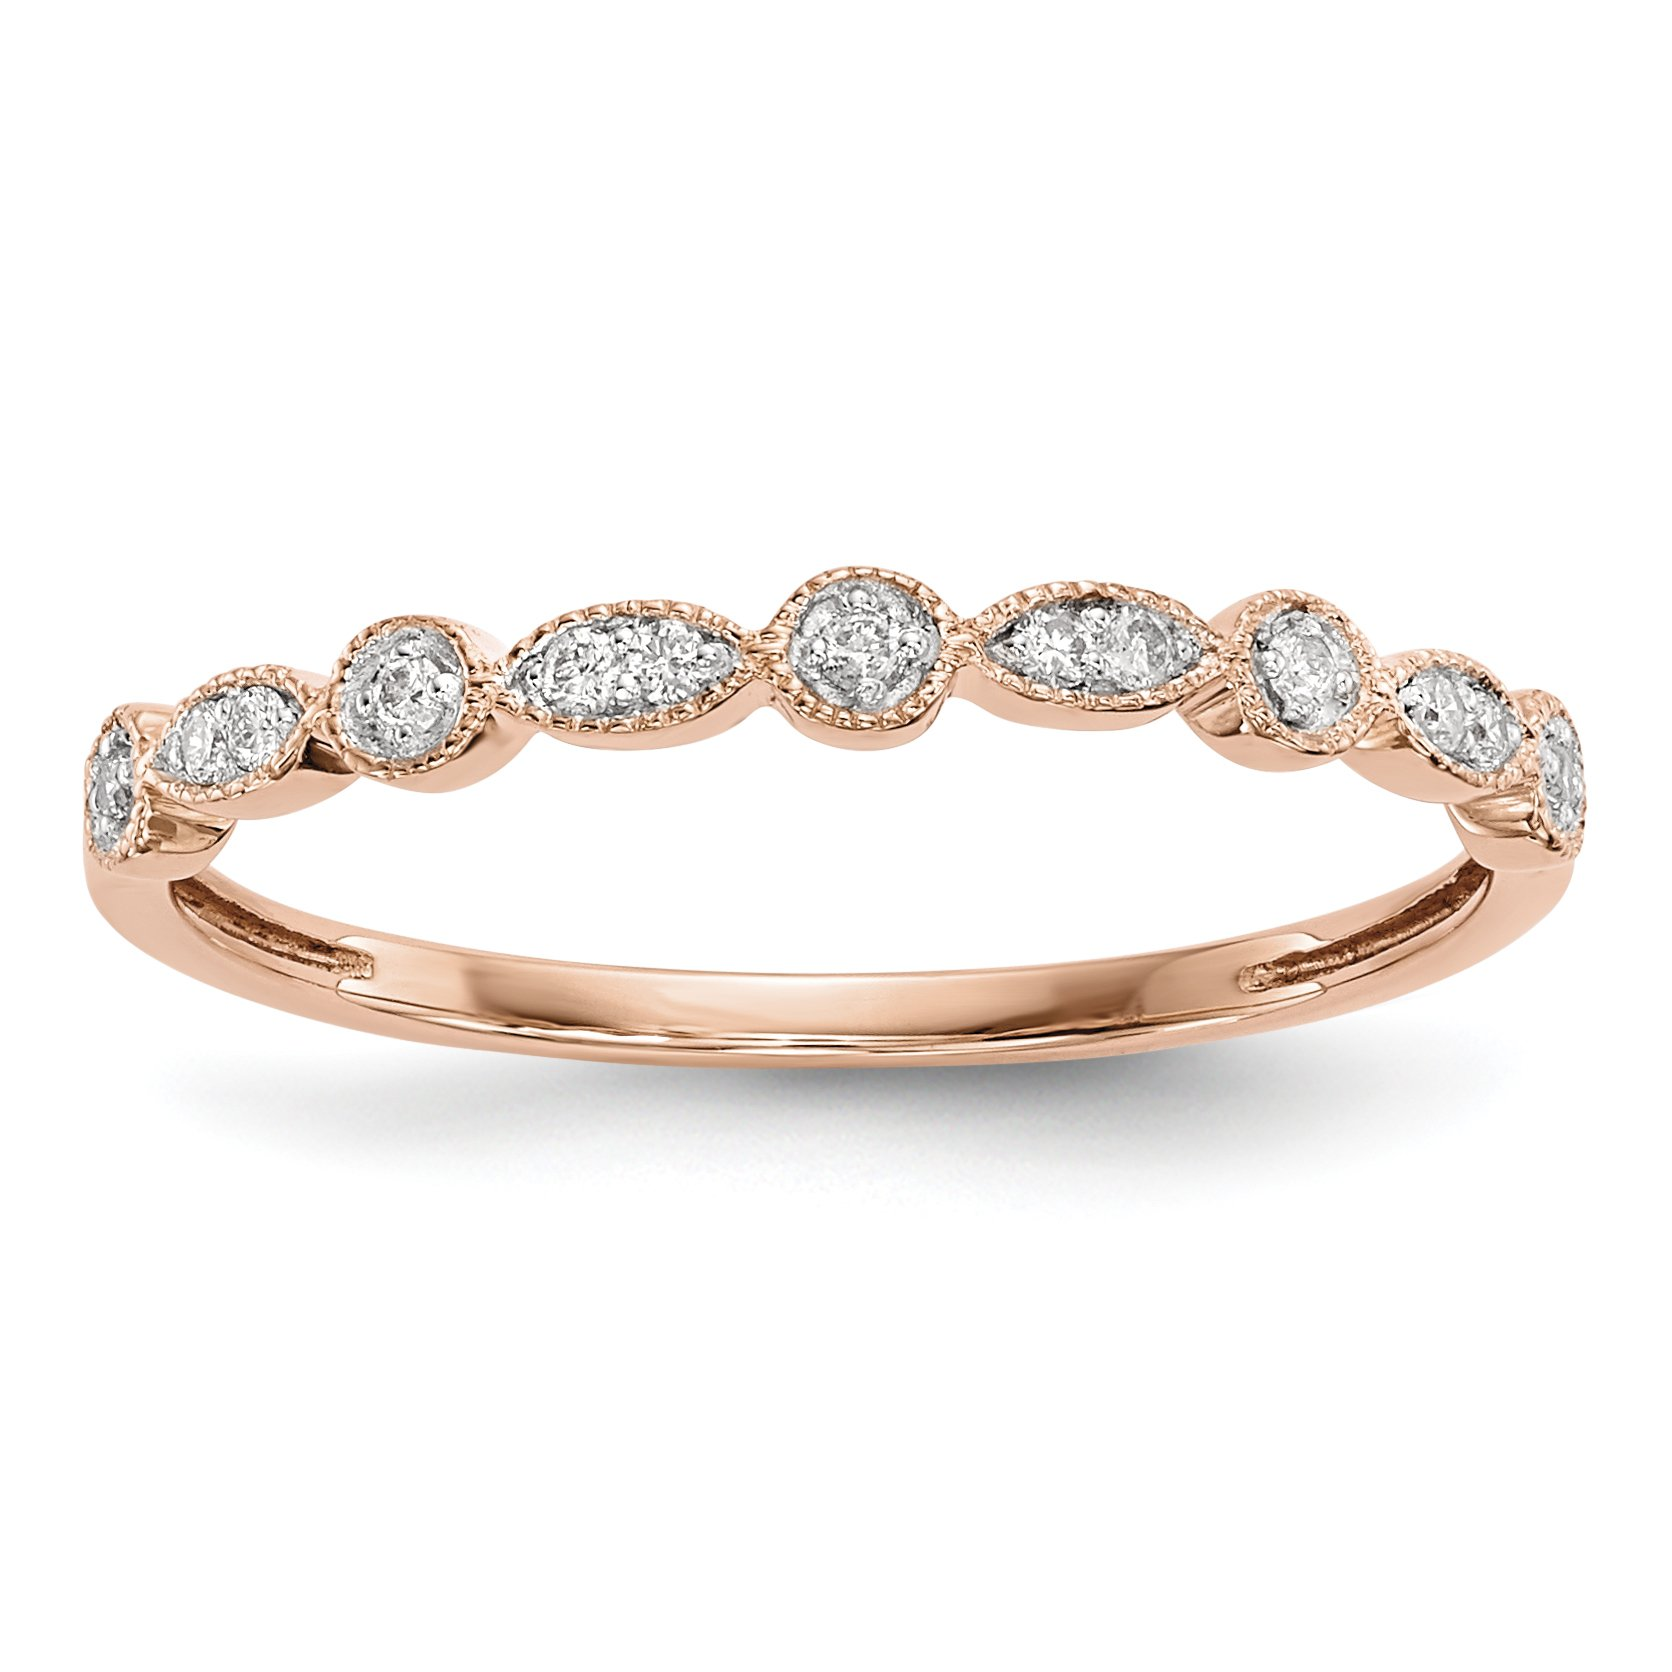 ICE CARATS 14k Rose Gold Diamond Band Ring Size 6.75 Fine Jewelry Gift Set For Women Heart